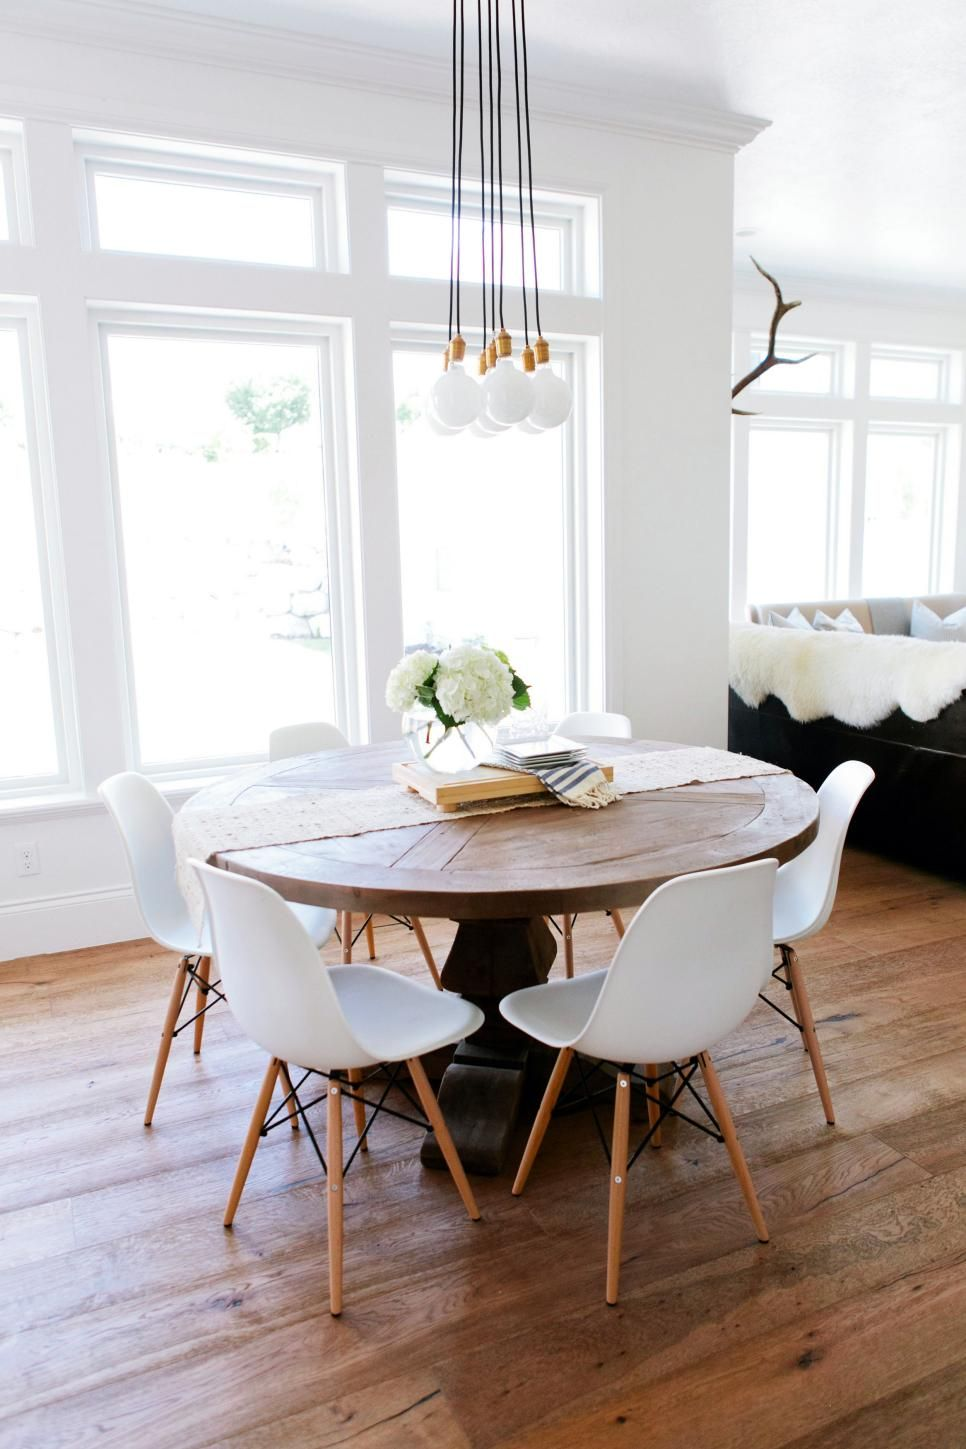 All-White Eat-In Kitchen With Black Cone Pendant Lights | Classic ...